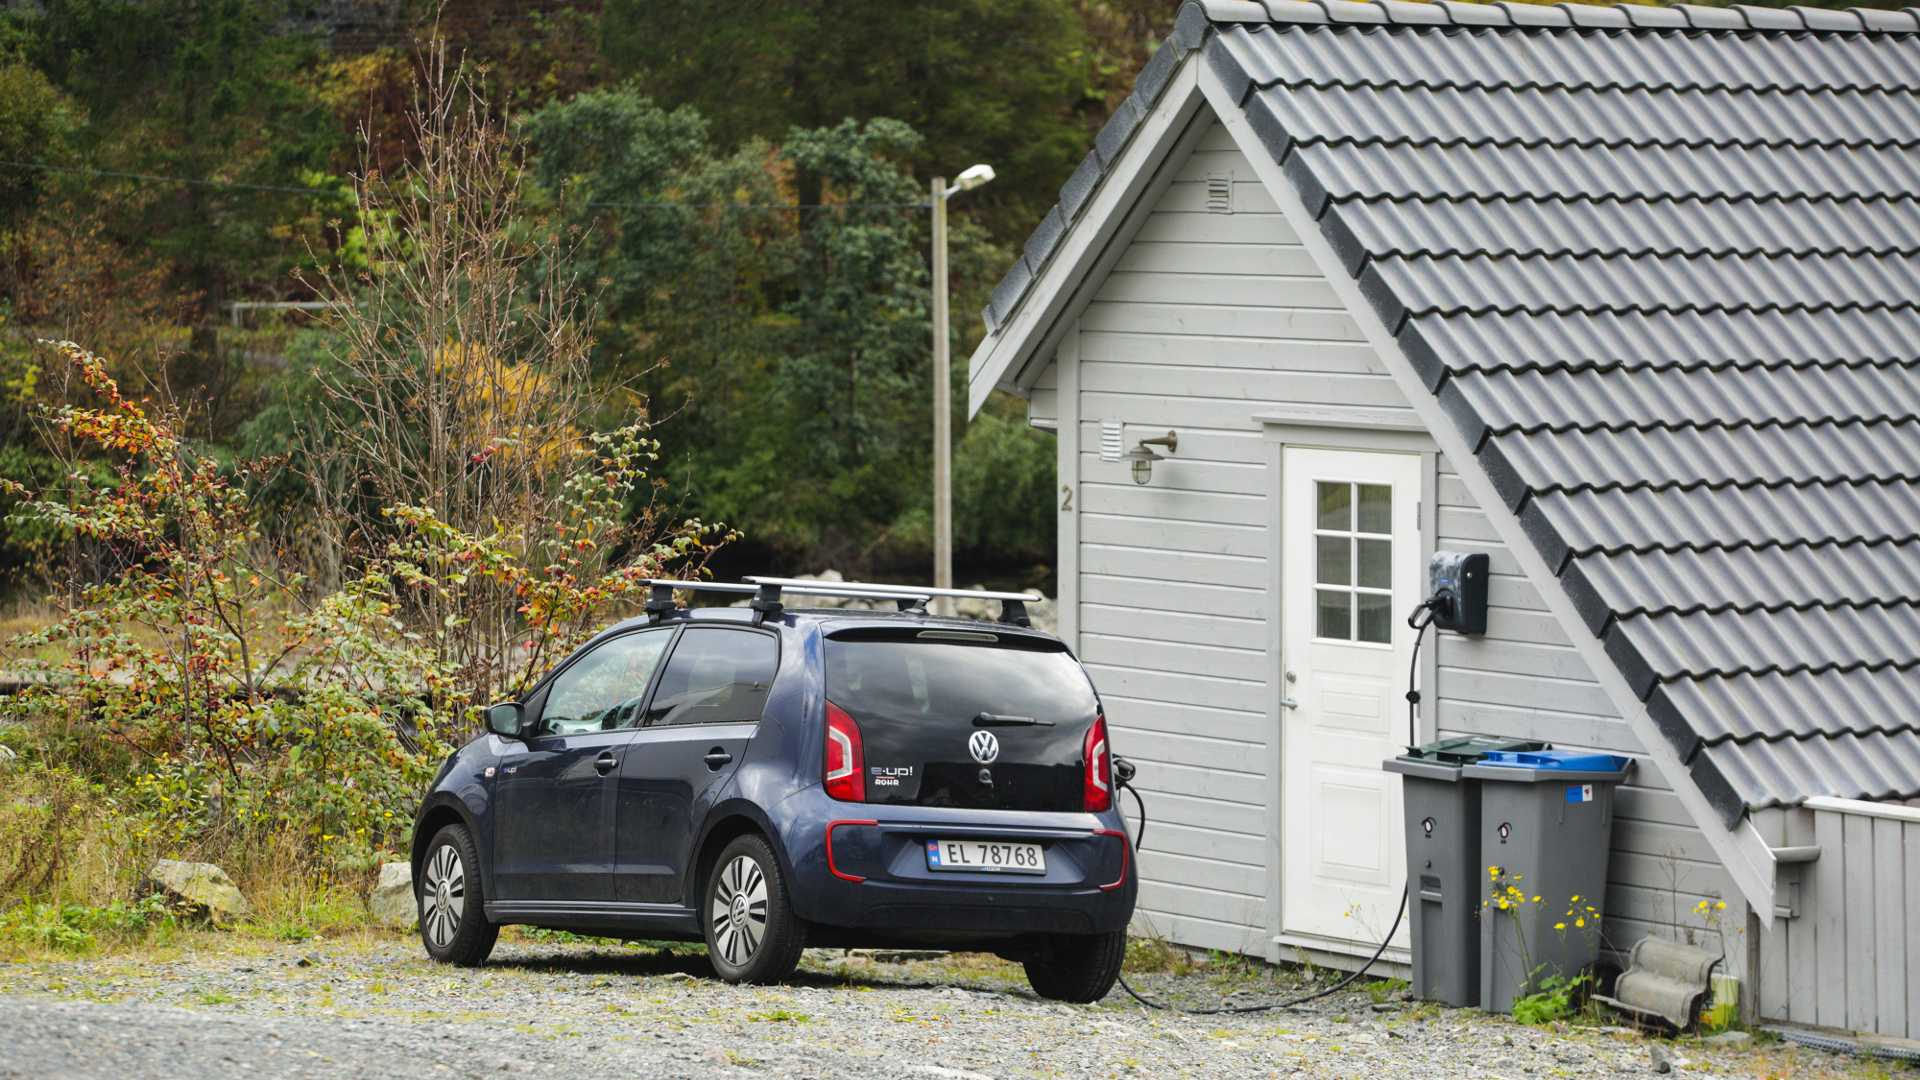 VW E-up at charging station attached to house in Bergen Norway